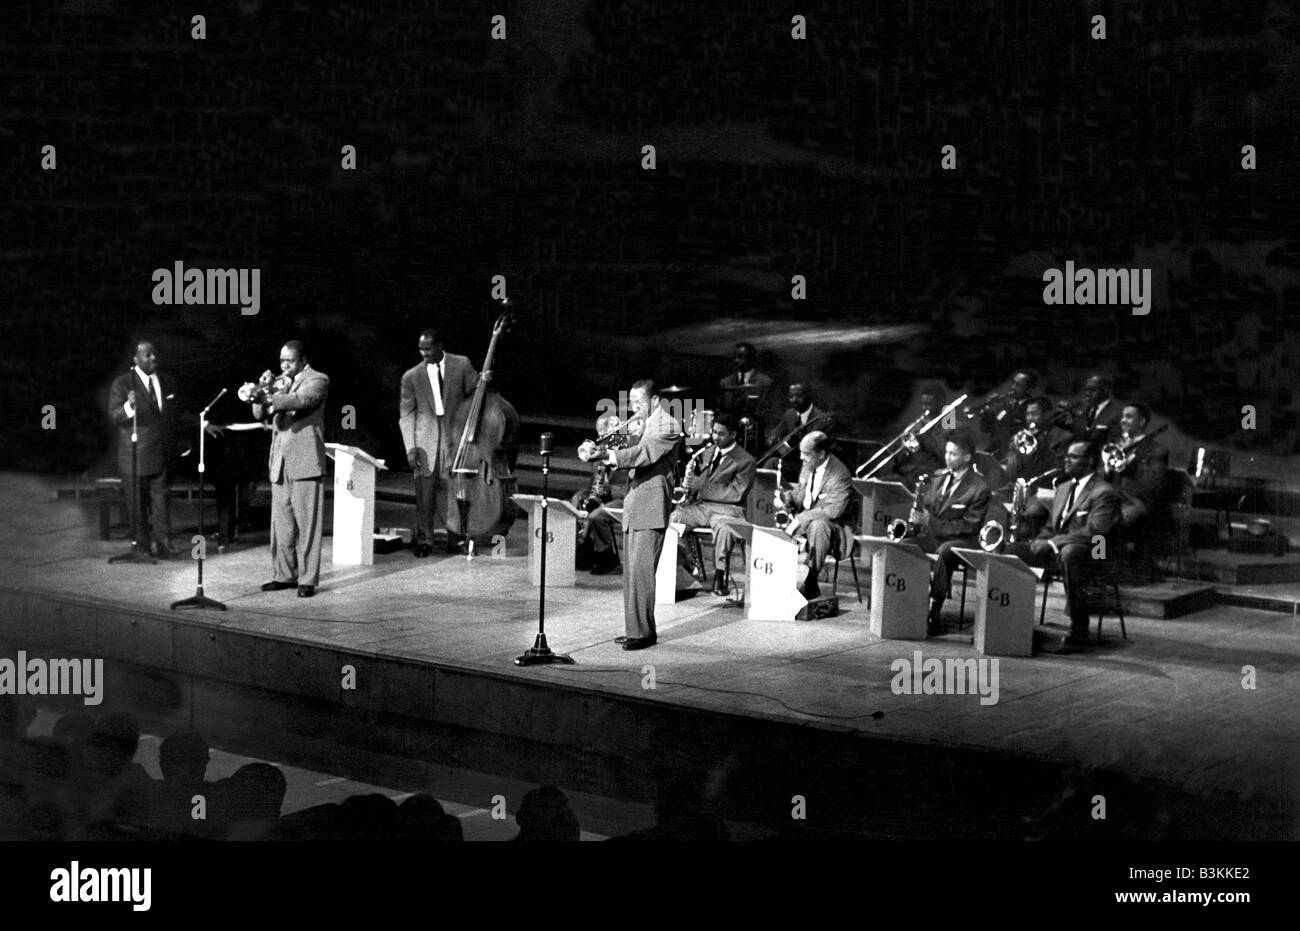 COUNT BASIE and his Orchestra in 1958 - Stock Image